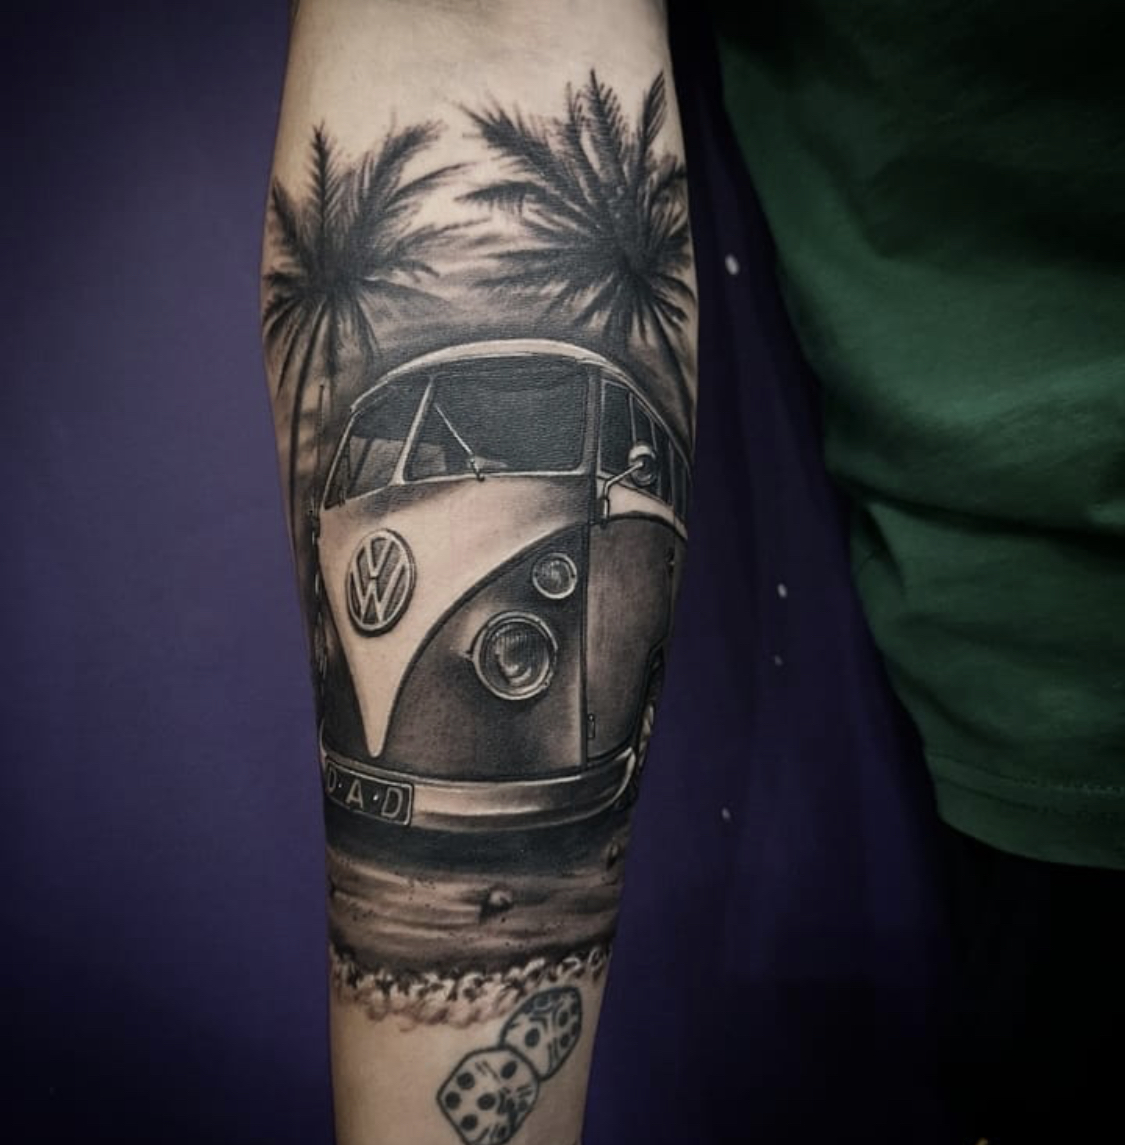 VW Camper done by @pellz_tattoos    • • • • • #emeraldtattoocompany #emeraldtattoo #talbotgreen #pontyclun #cardiff #rct #southwales #vwcamper #vwcampervan  #campervantattoo #vwcampervantattoo #blackandgreytattoo #tattoodesign #tattooart #tattoo #tattoos #ink #inked https://t.co/GaHgzNvD3u